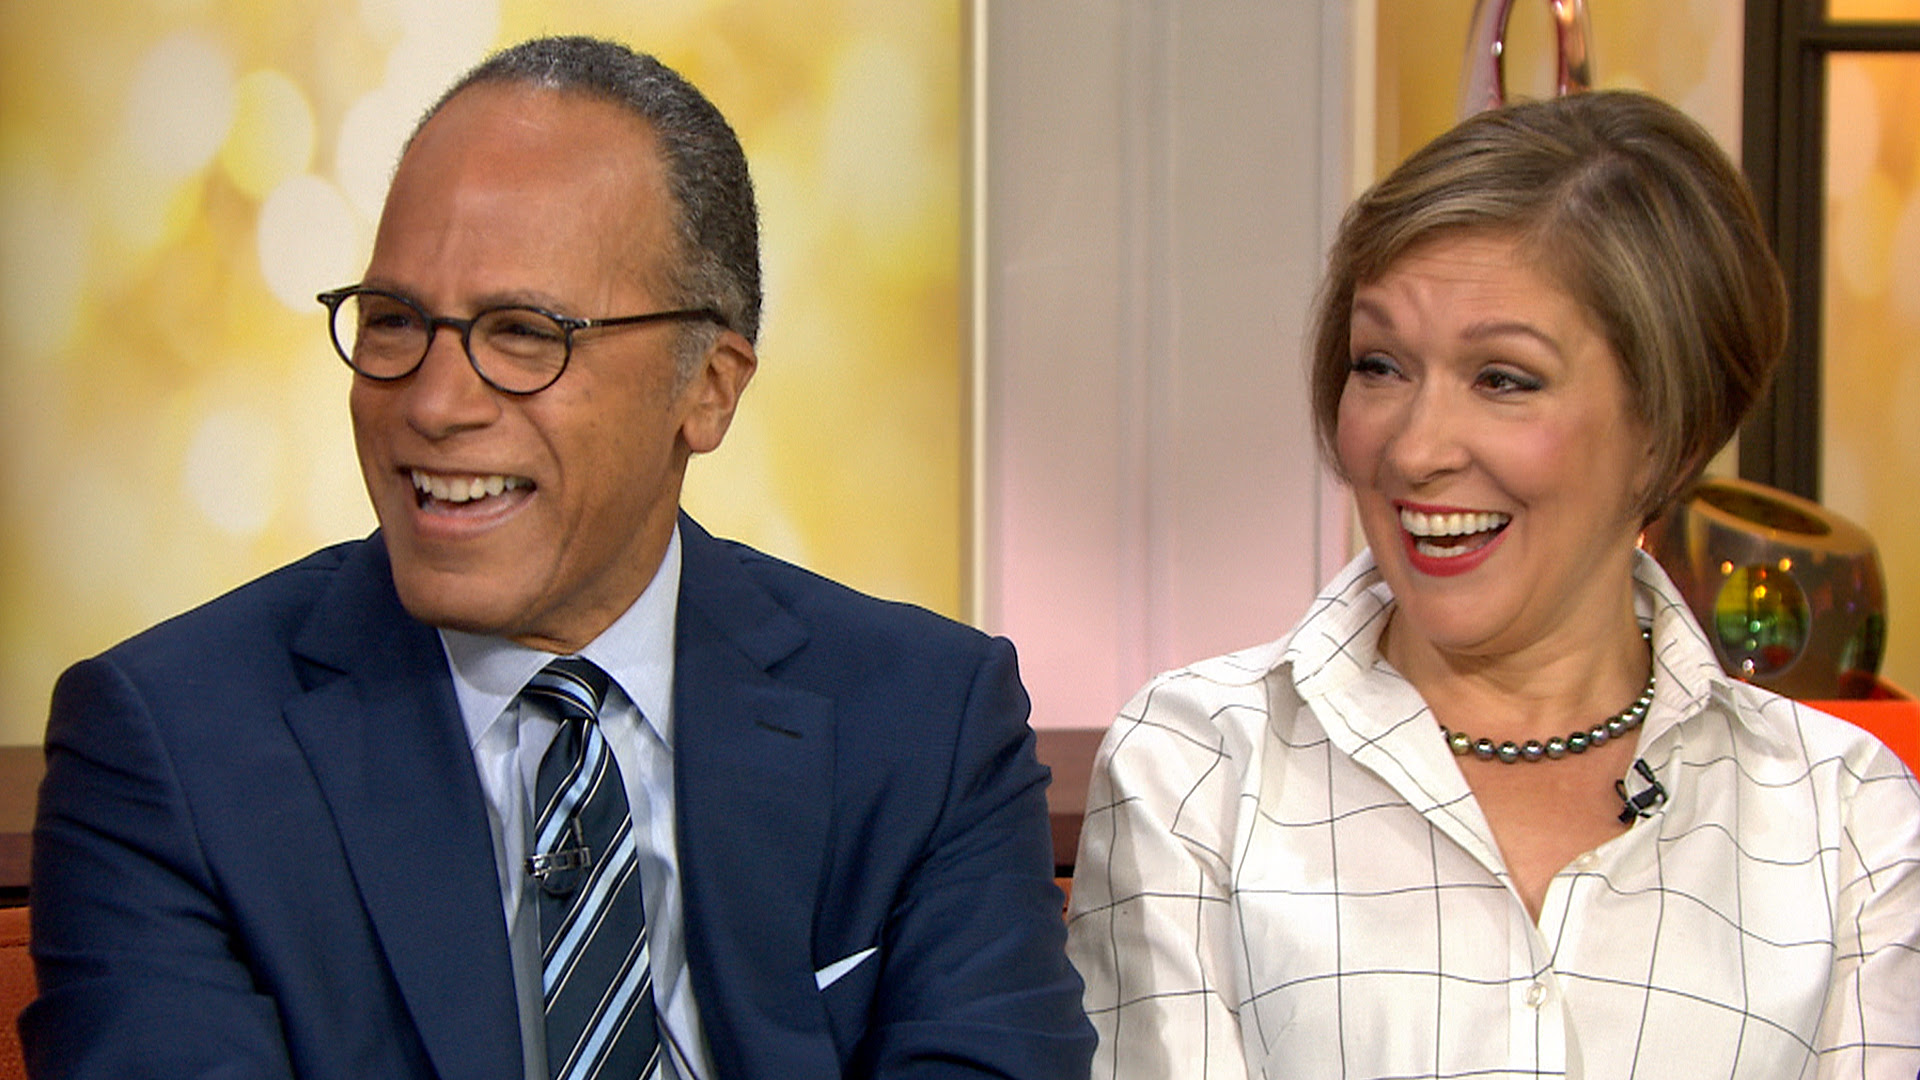 Lester Holt Its Like My First Day Of School At Nightly News